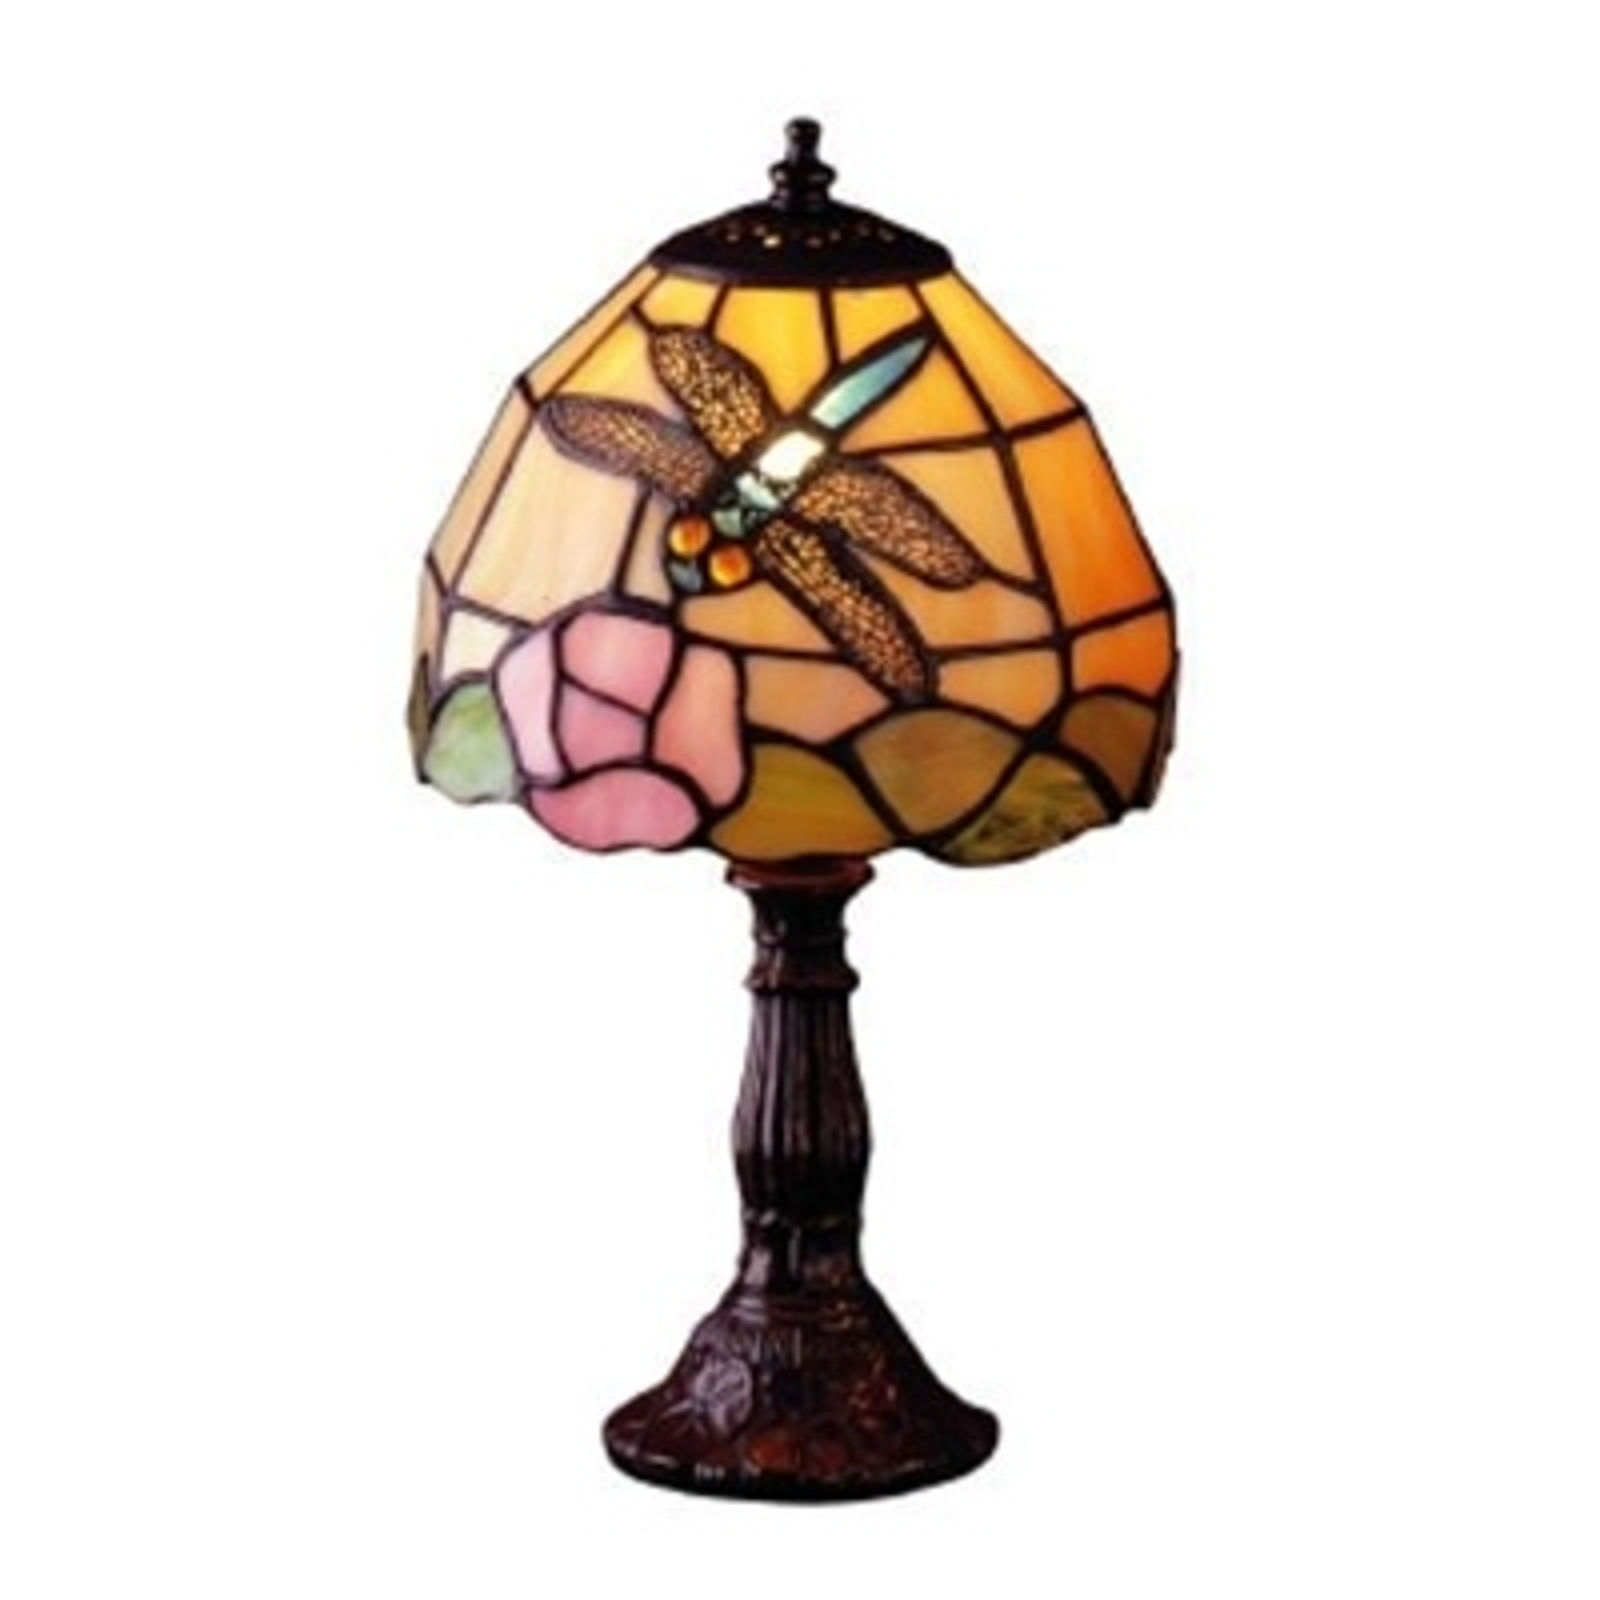 JANNEKA bordlampe i Tiffany-stil